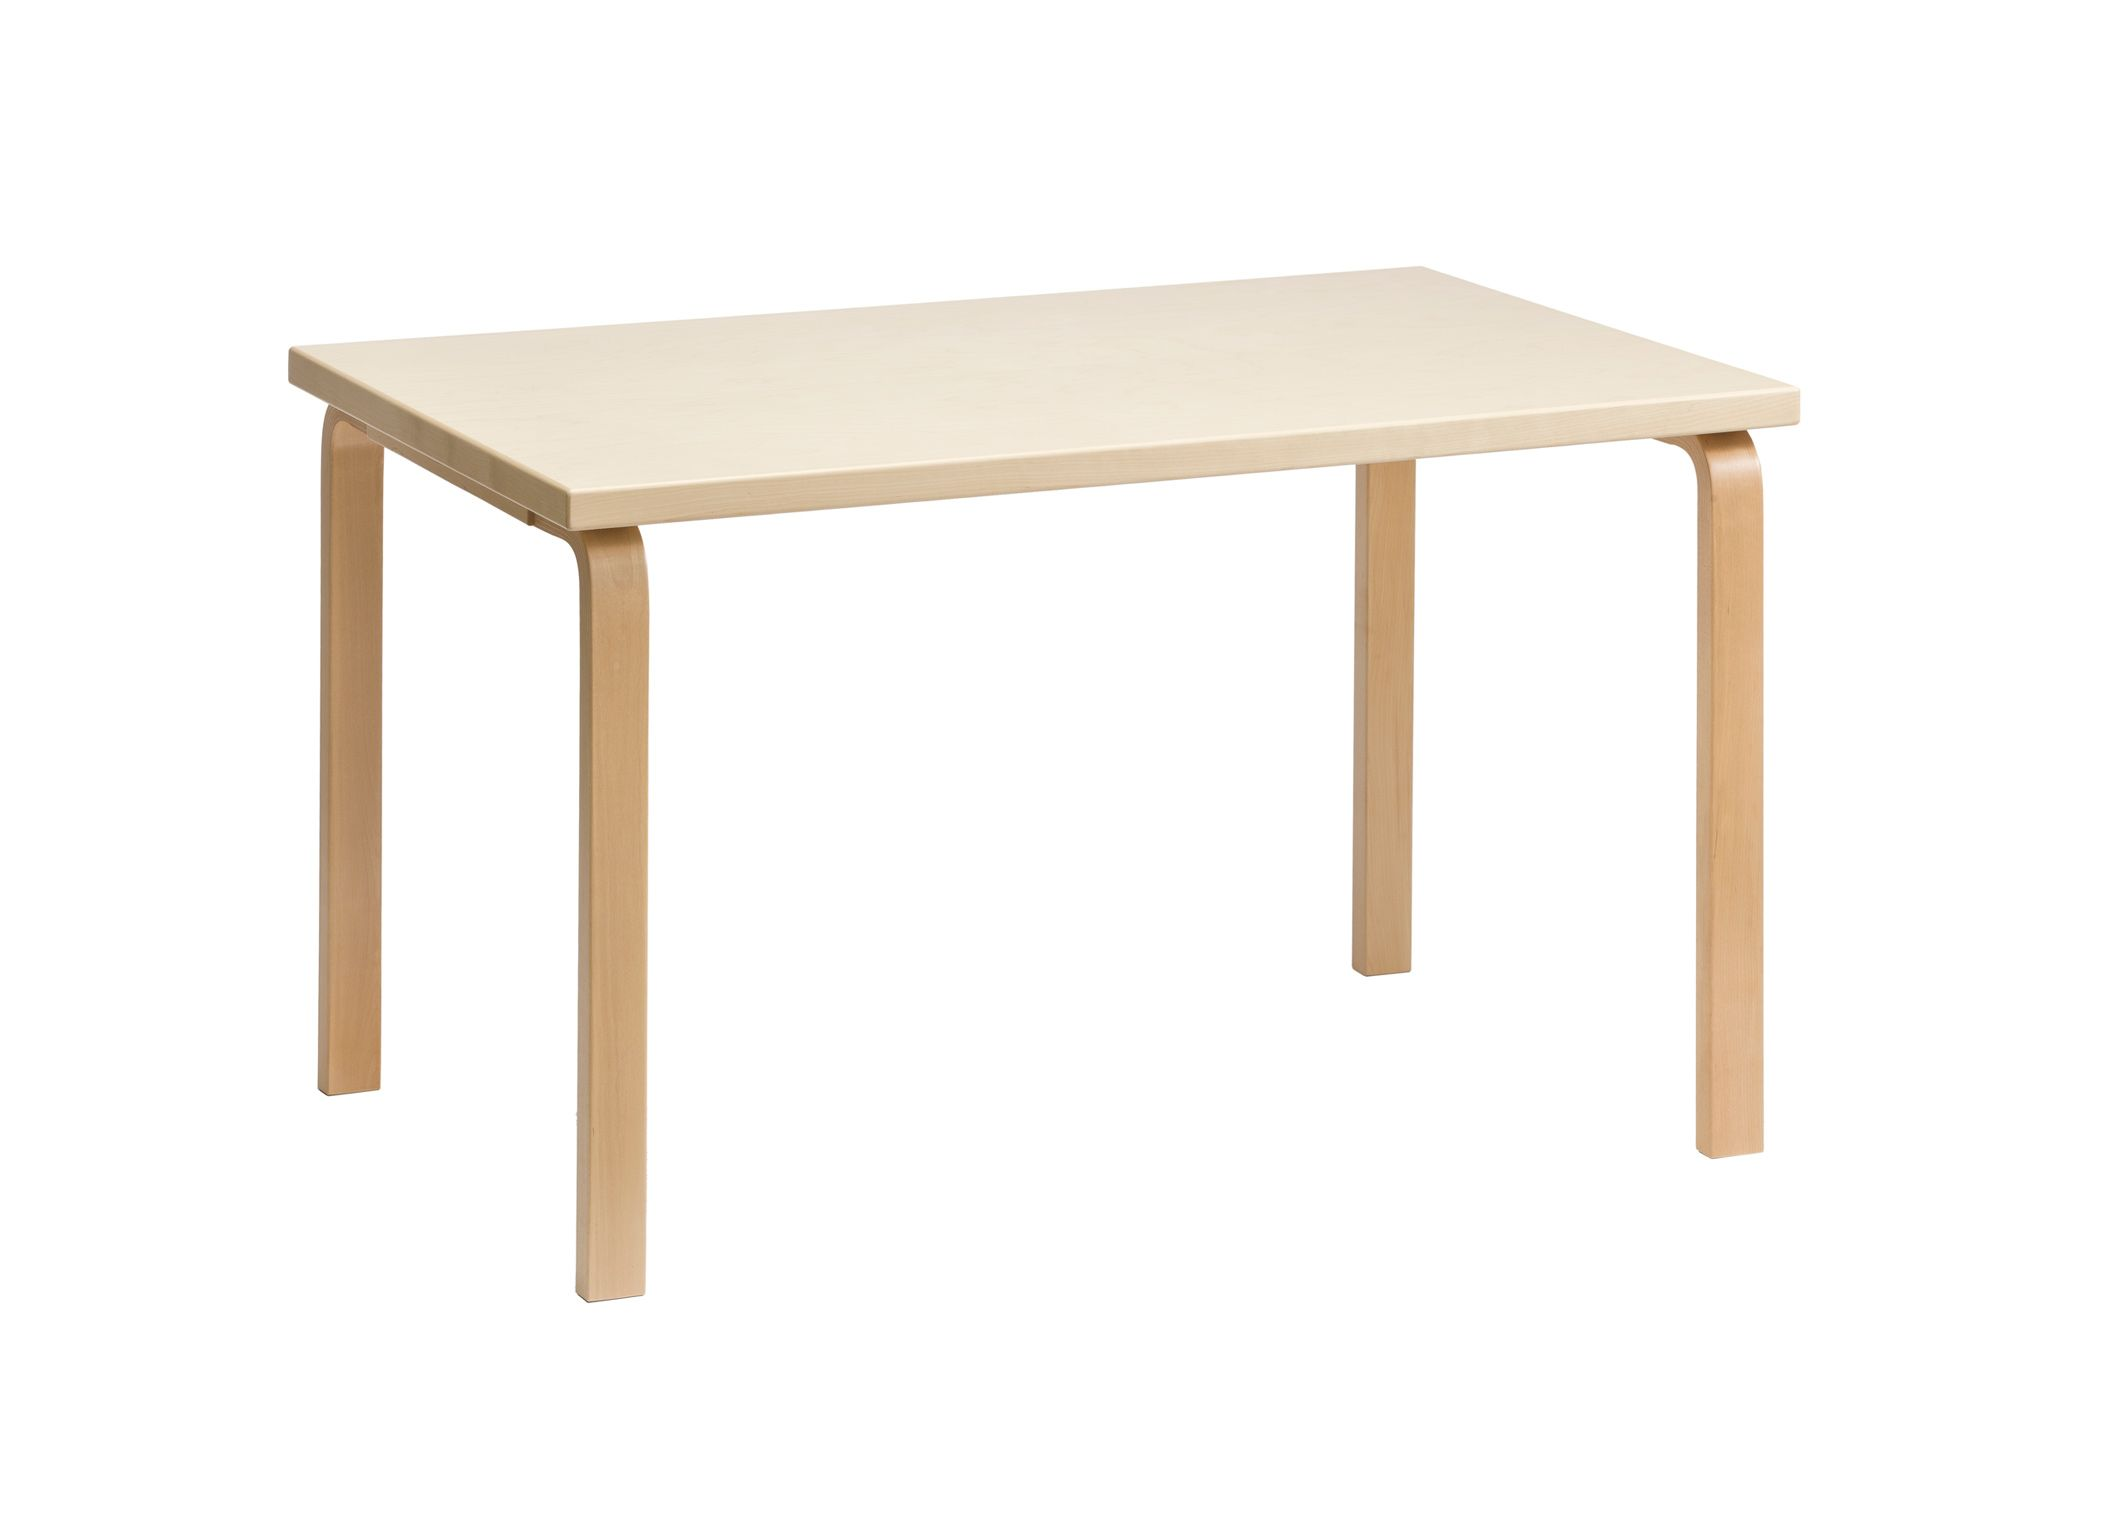 alvar aalto b table – artek furniture  artek usa  furniture  - alvar aalto b table – artek furniture  artek usa